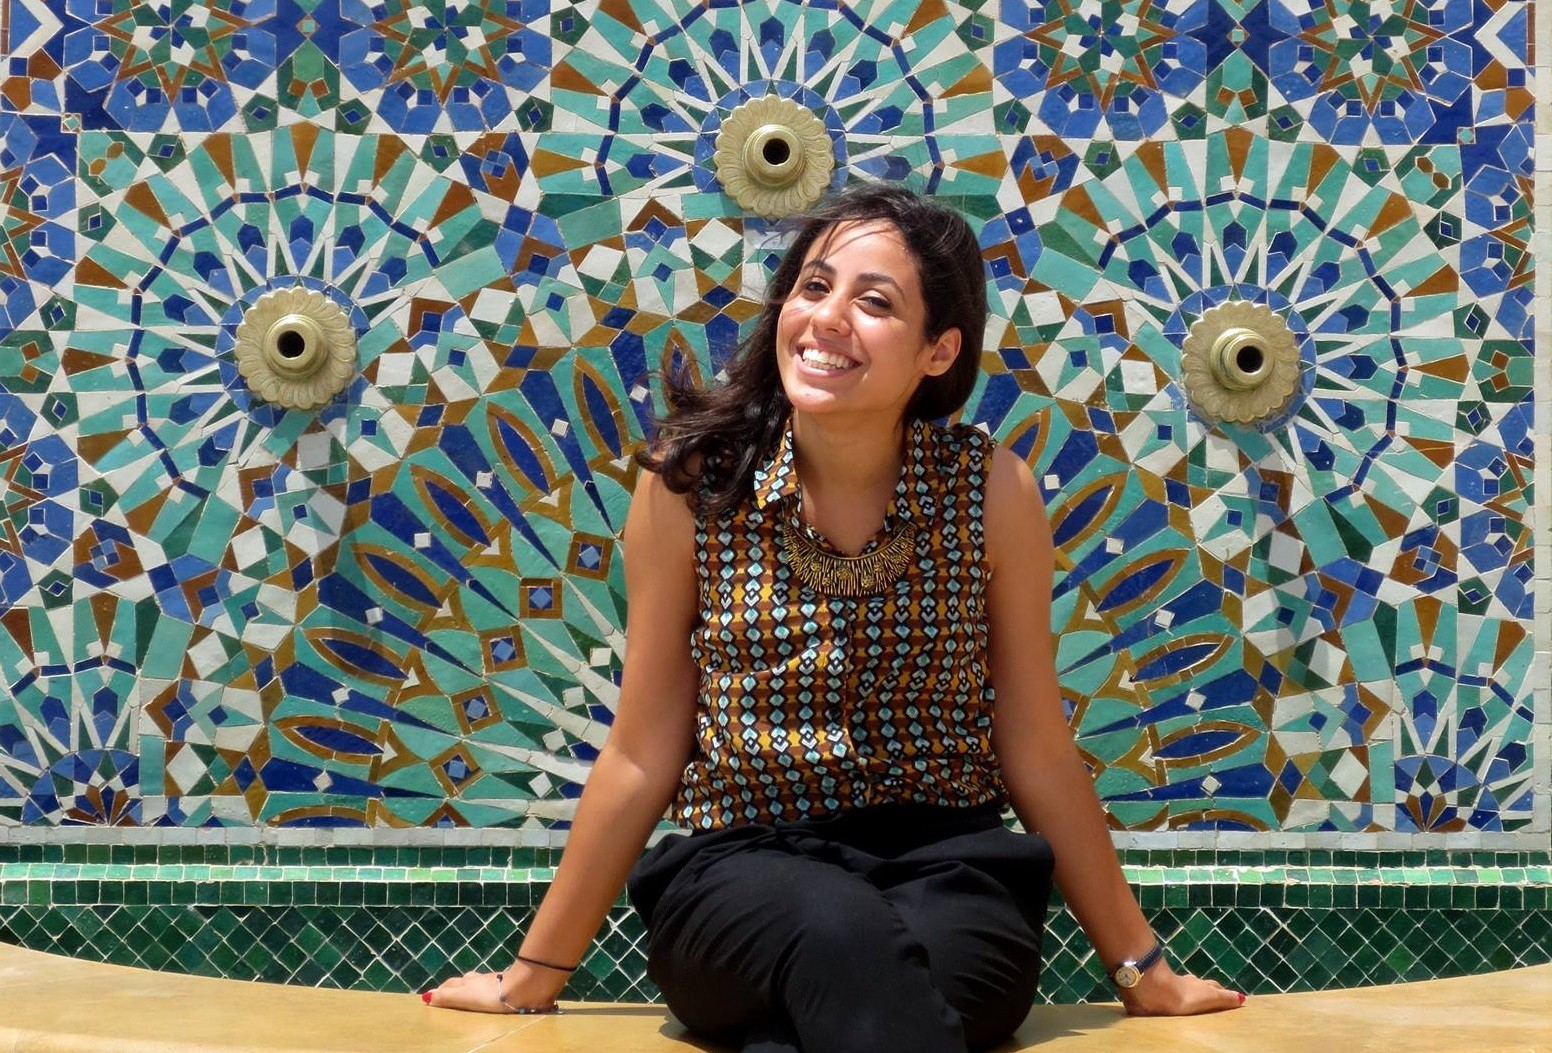 Sarah Zouak is one of the co-founders of Lallab, a new webzine featuring the voices of Muslim women in France.